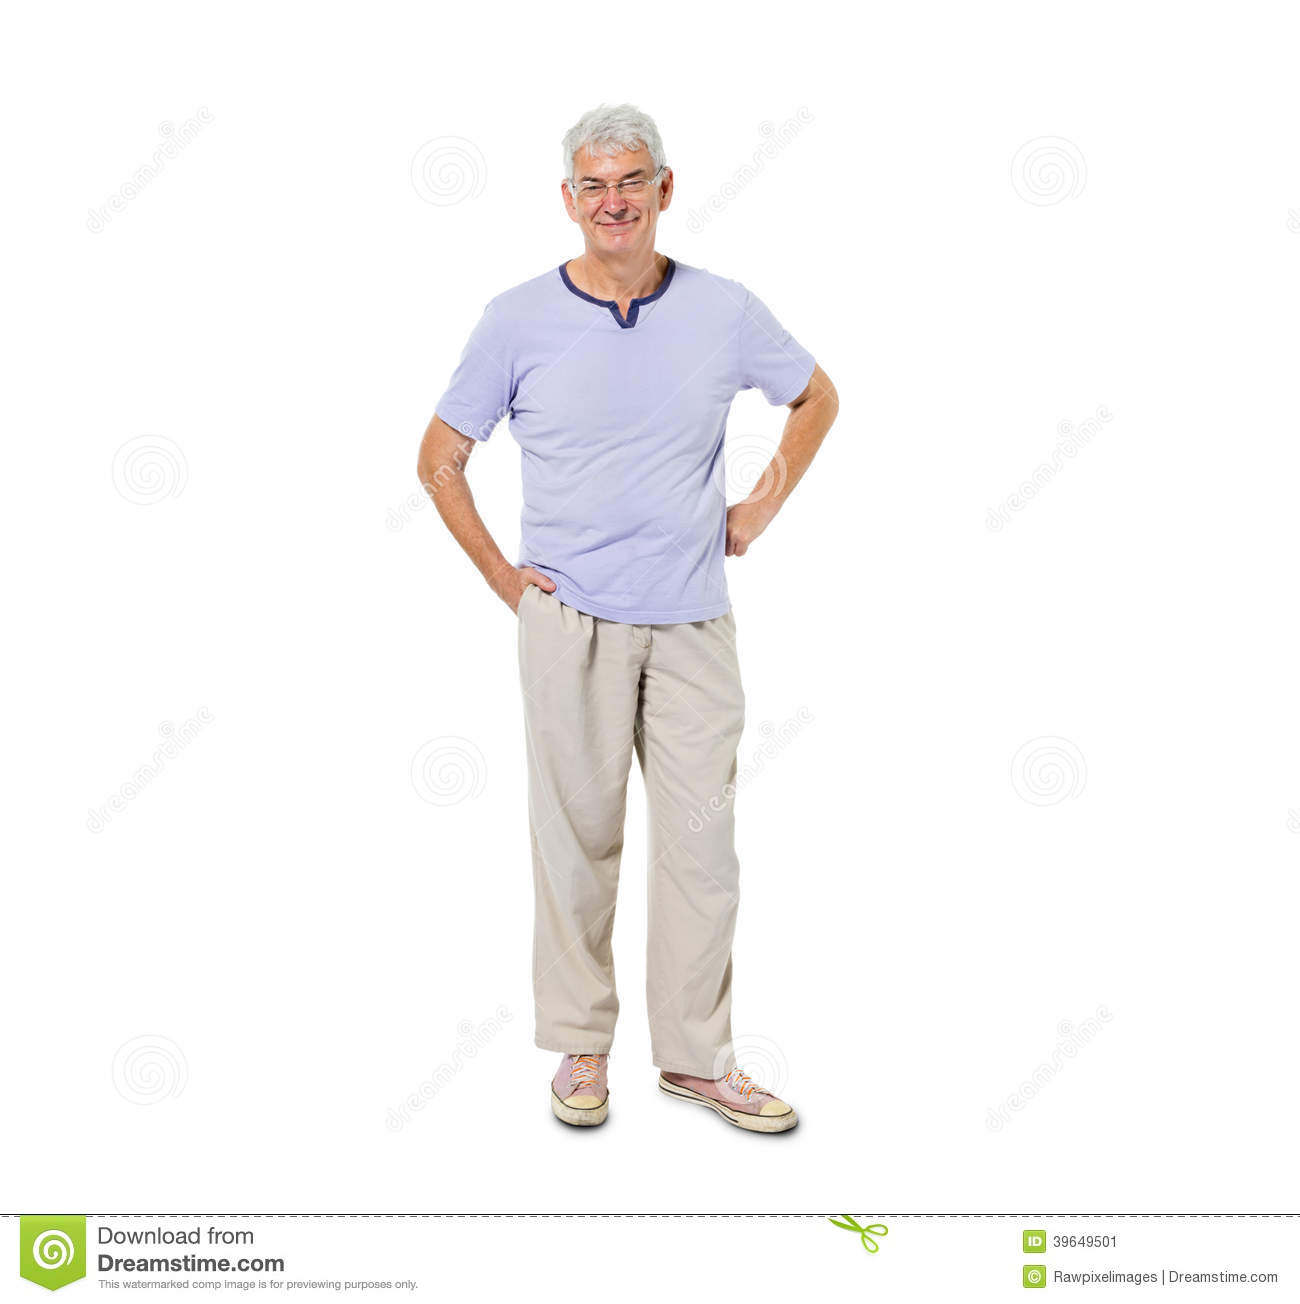 Confident Senior Man Standing and Smiling